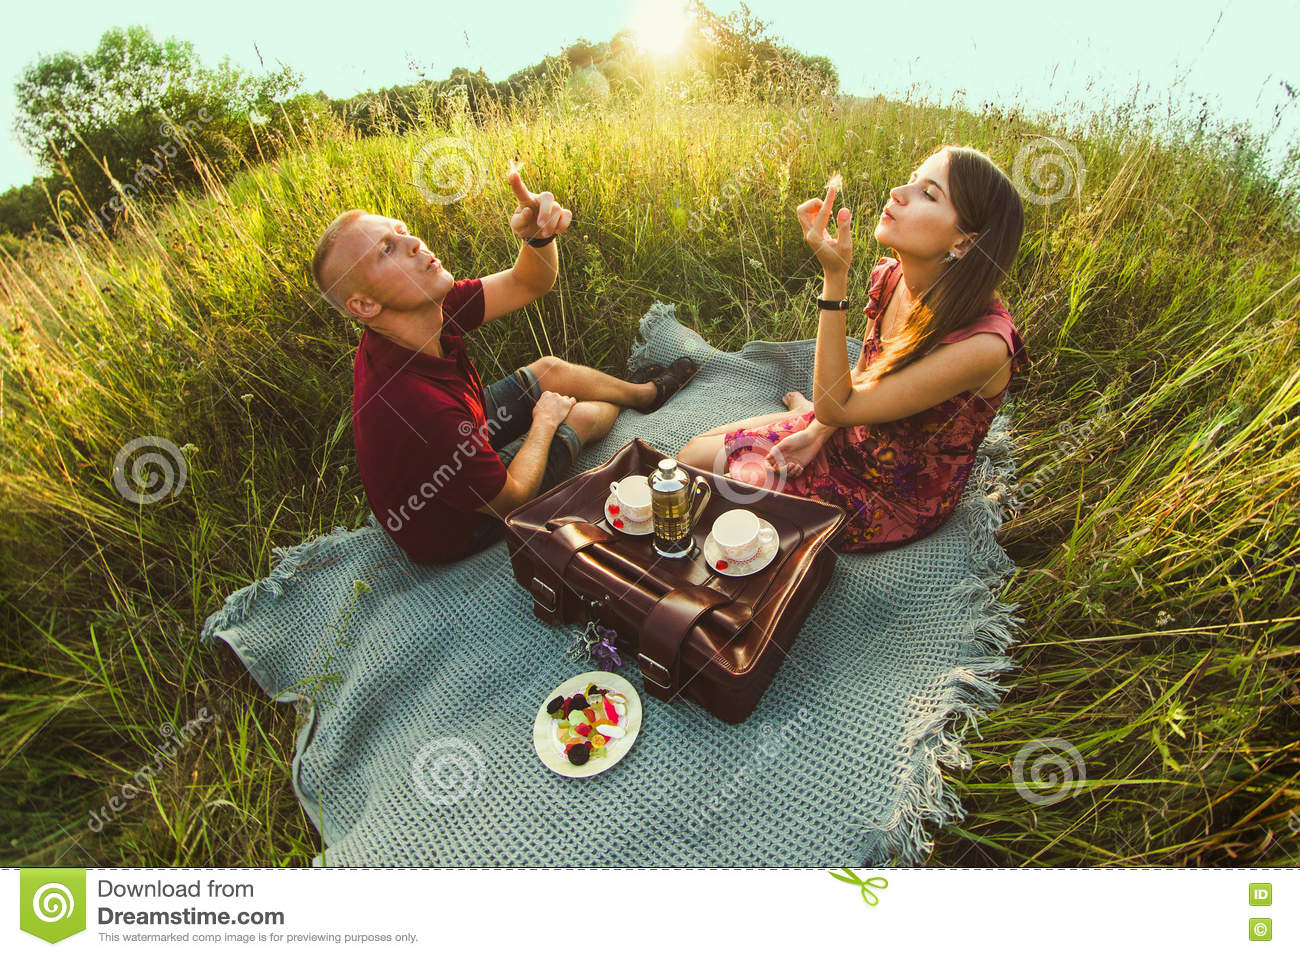 Guy with a girl in summer on the grass